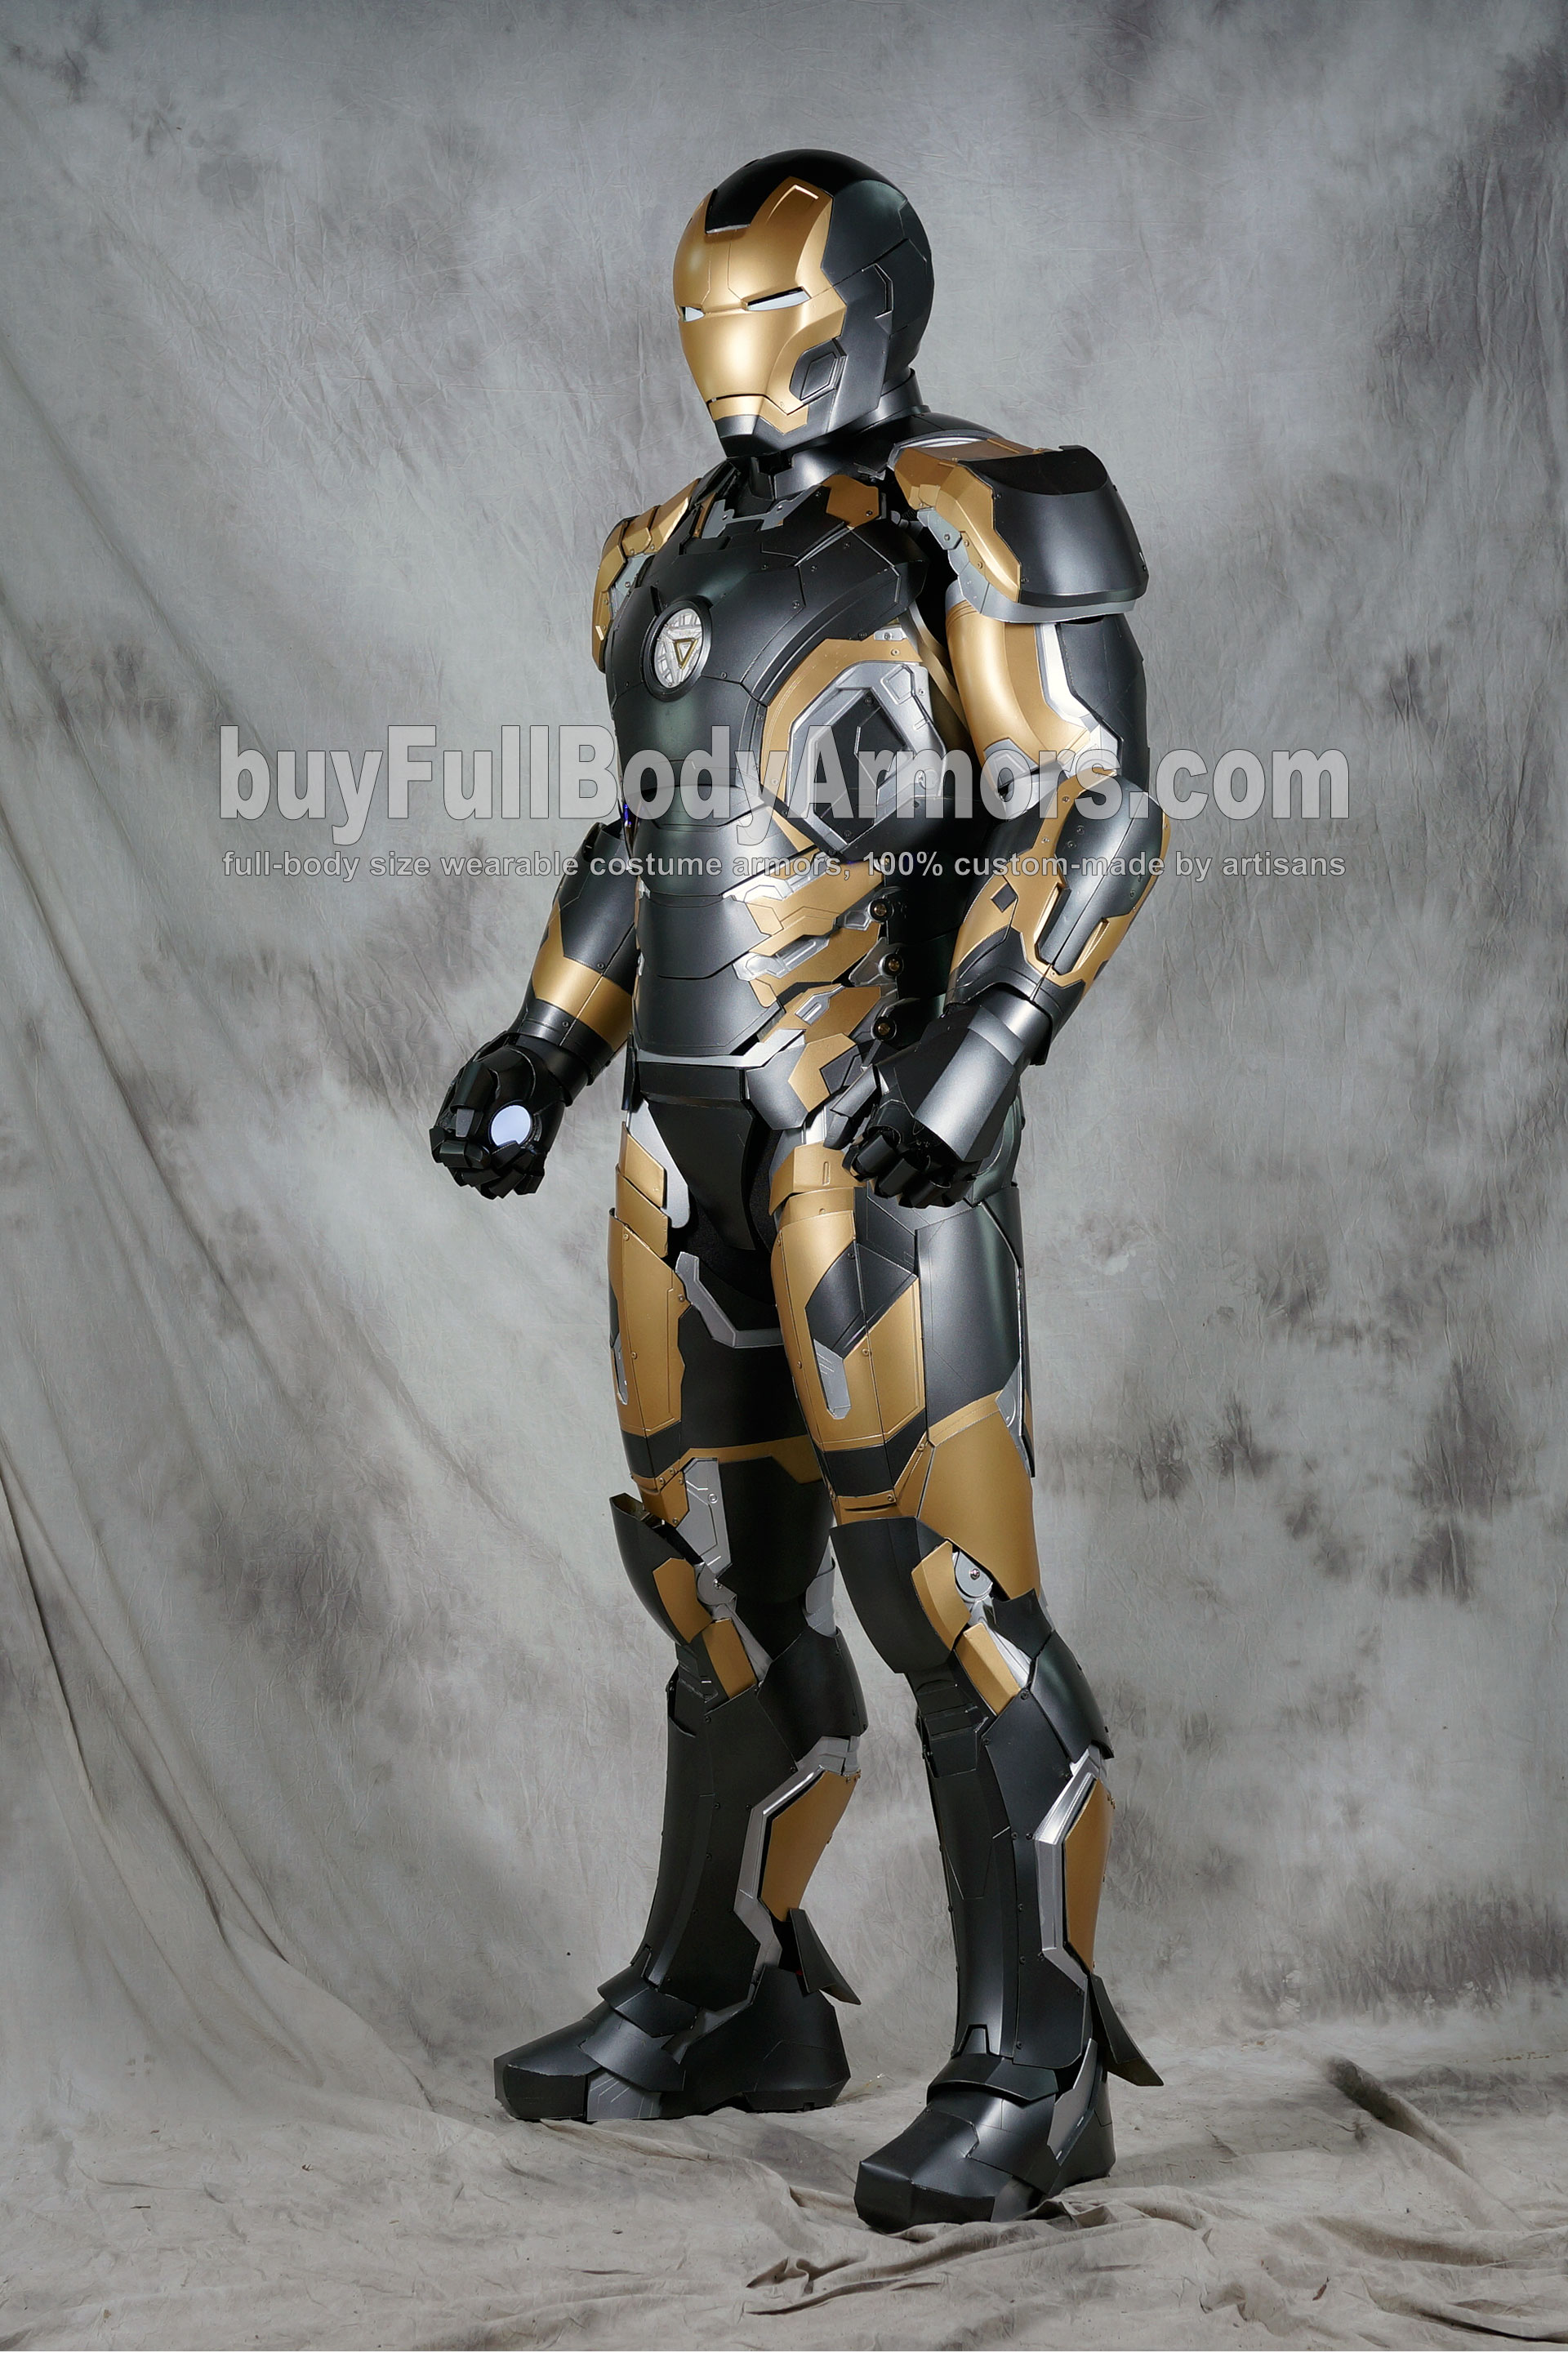 [Special Edition] Black Gold Wearable Iron Man Suit Mark 43 XLIII Armor Costume  2